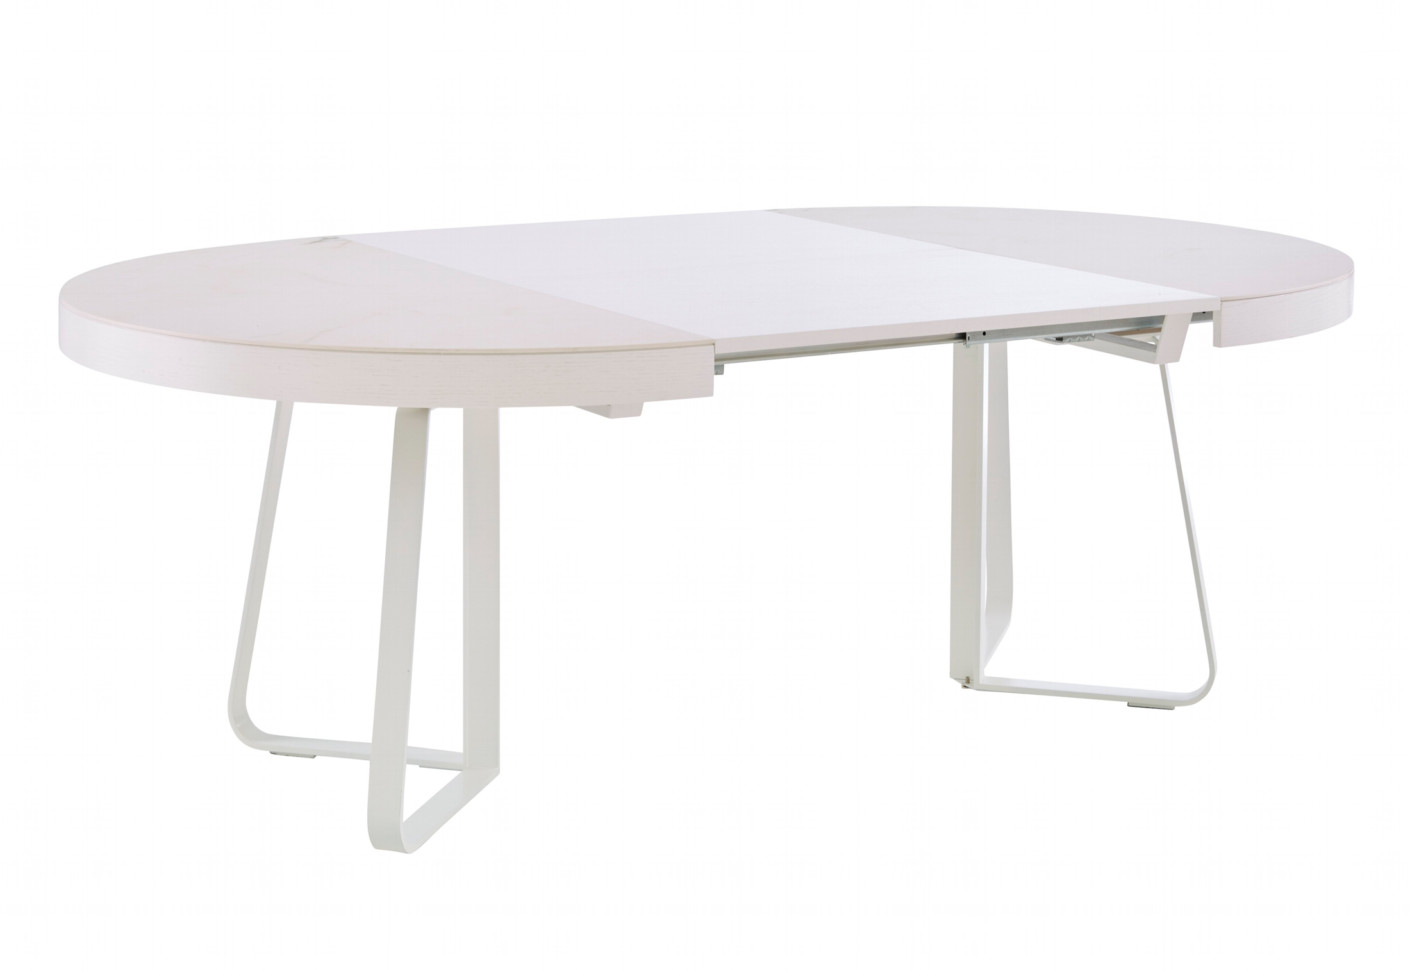 New Versions Of The Squared Dining Table AVA From Thibault Dsombre